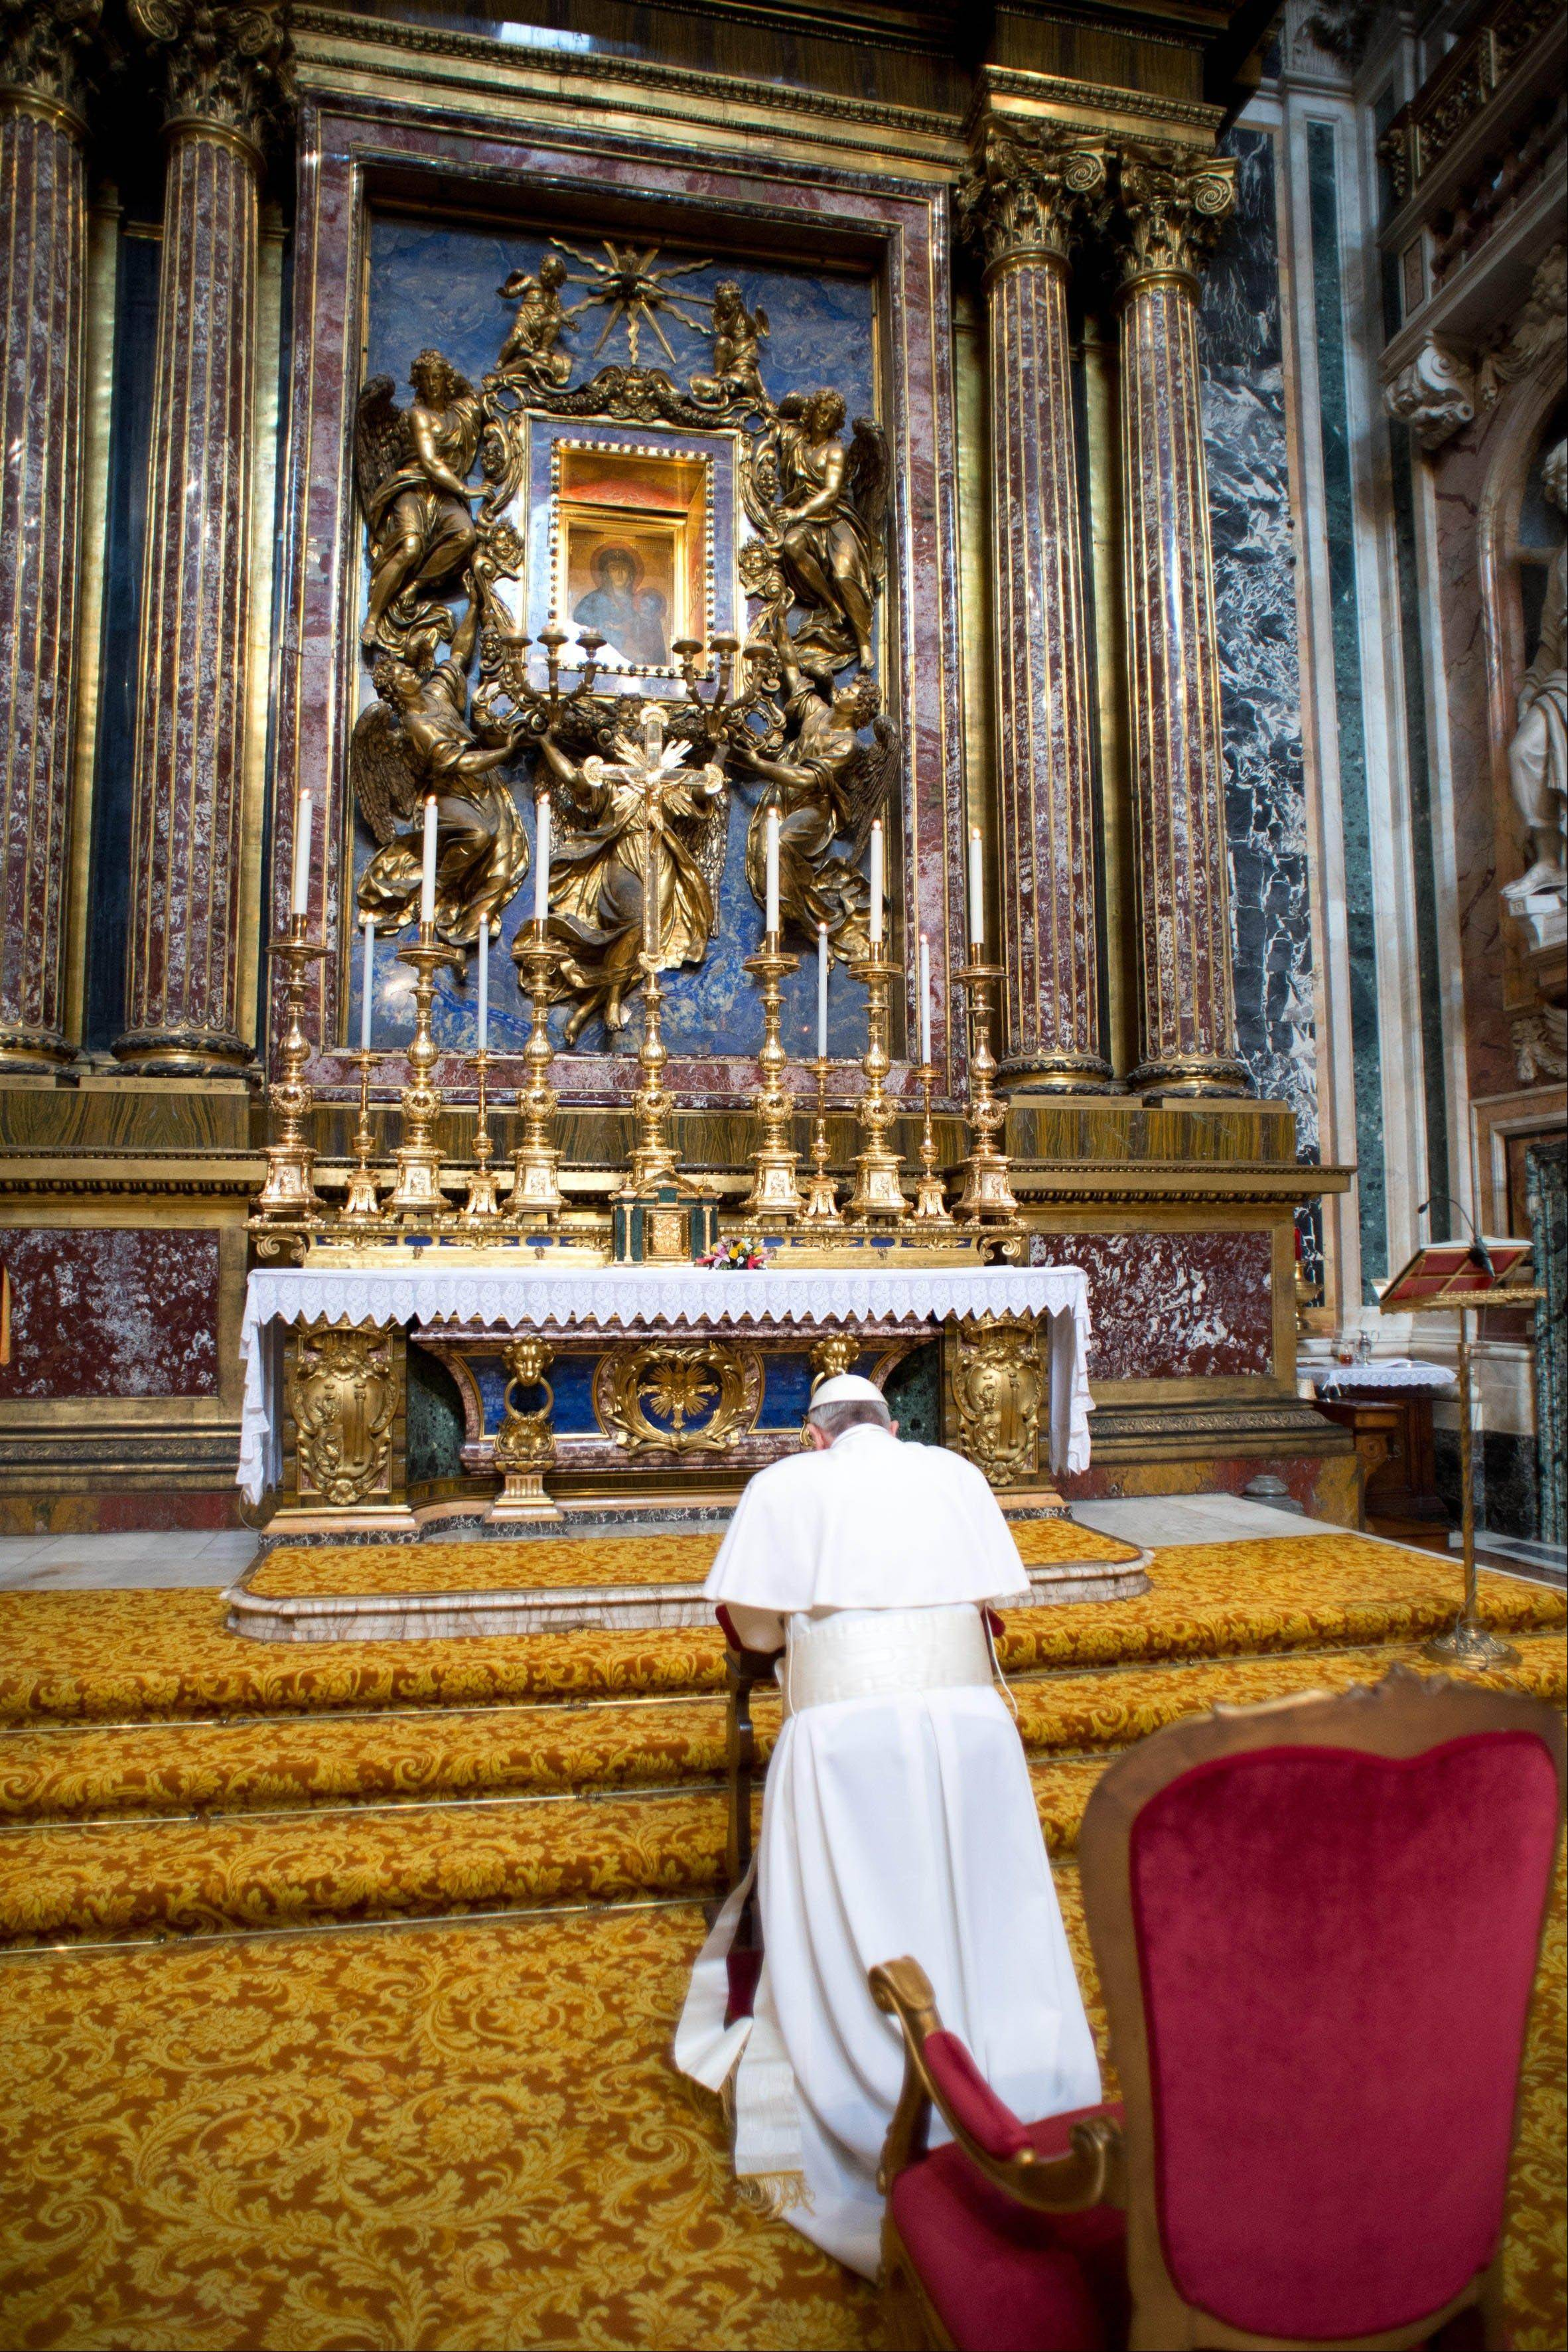 Pope Francis kneels in prayer in front of the icon of the Virgin Mary inside St. Mary Major Basilica, in Rome, Thursday, March 14, 2013. Pope Francis opened his first morning as pontiff by praying Thursday at Rome's main basilica dedicated to the Virgin Mary, a day after cardinals elected him the first pope from the Americas.